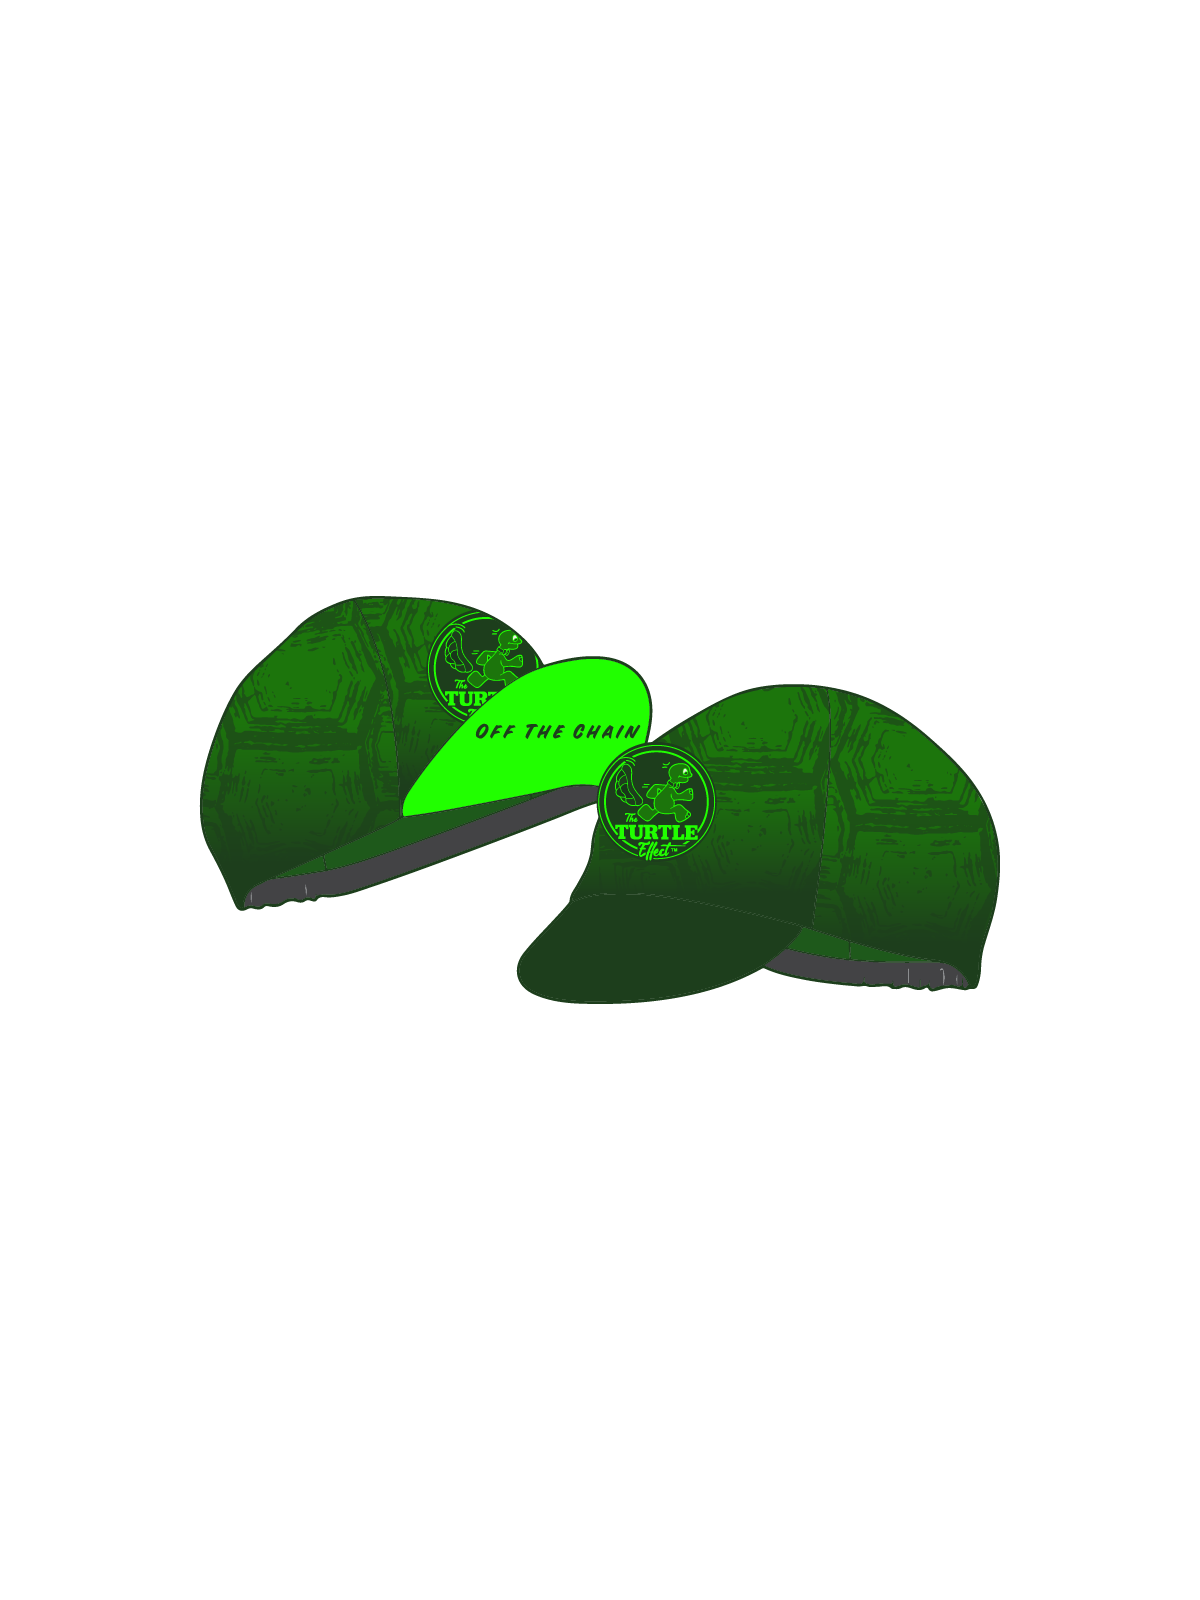 TURTLE Effect Cycling Cap